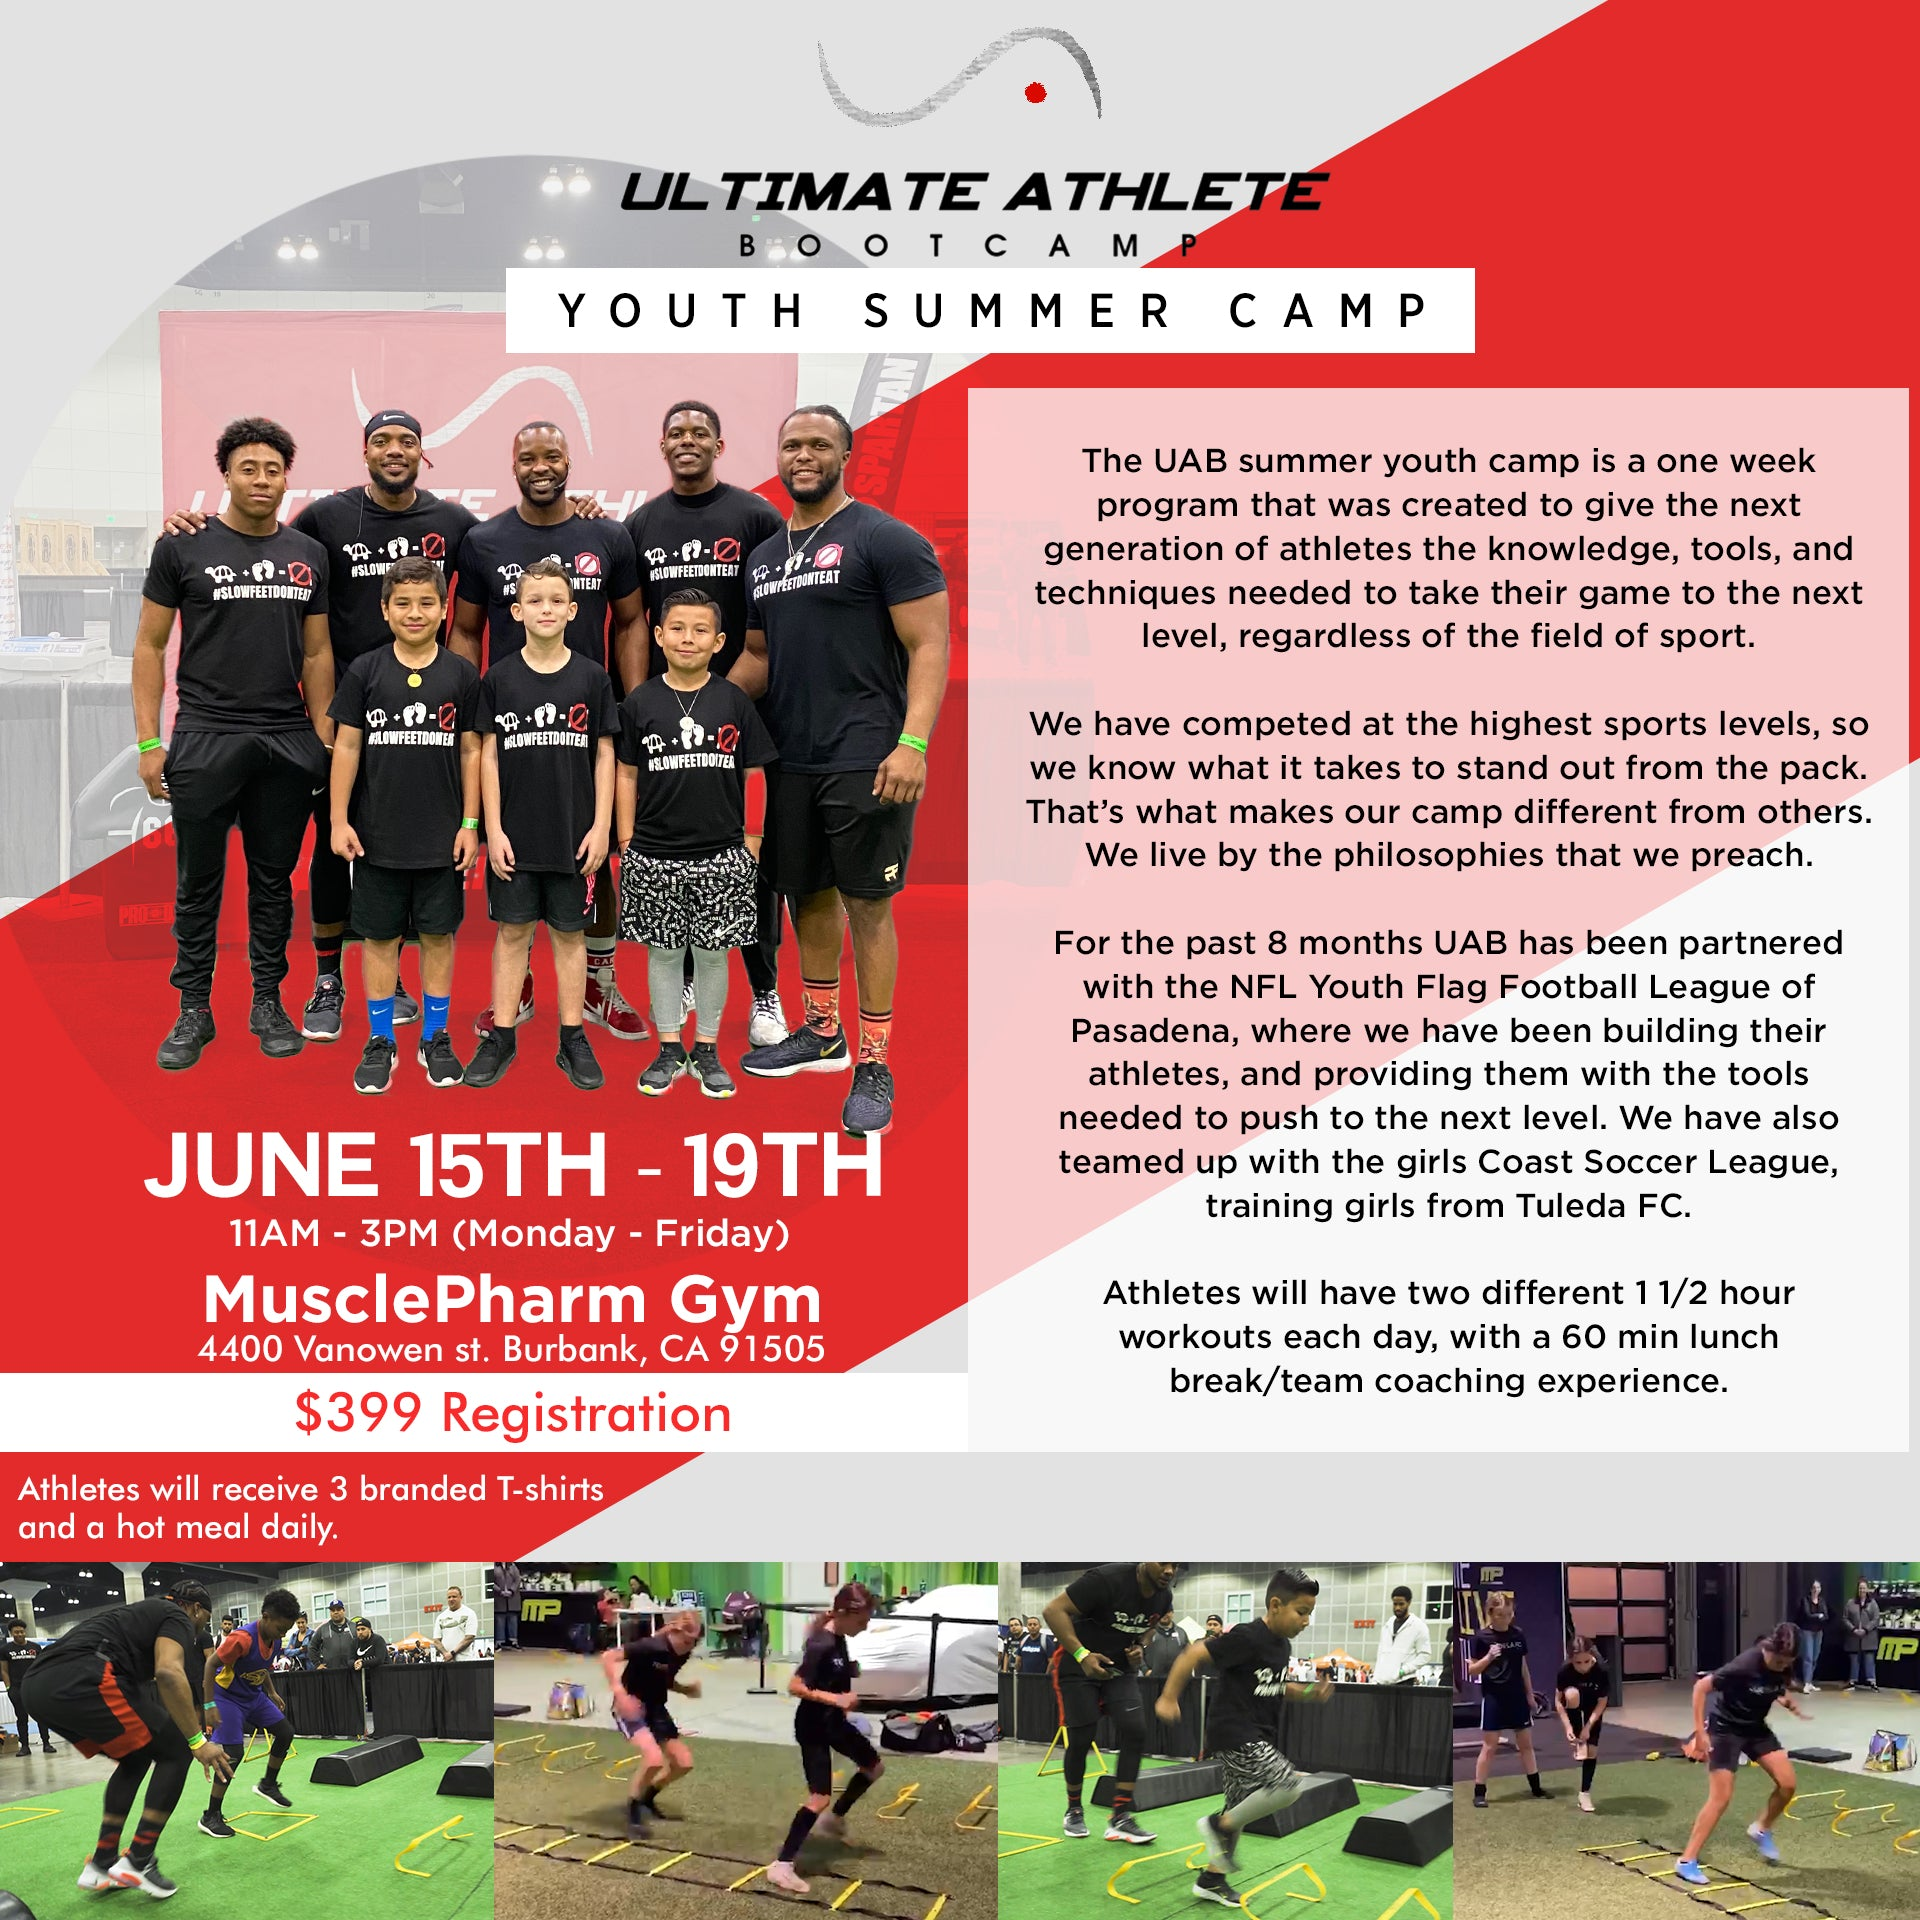 UAB Youth Summer Camp |  Los Angeles June 15th - 19th 2020